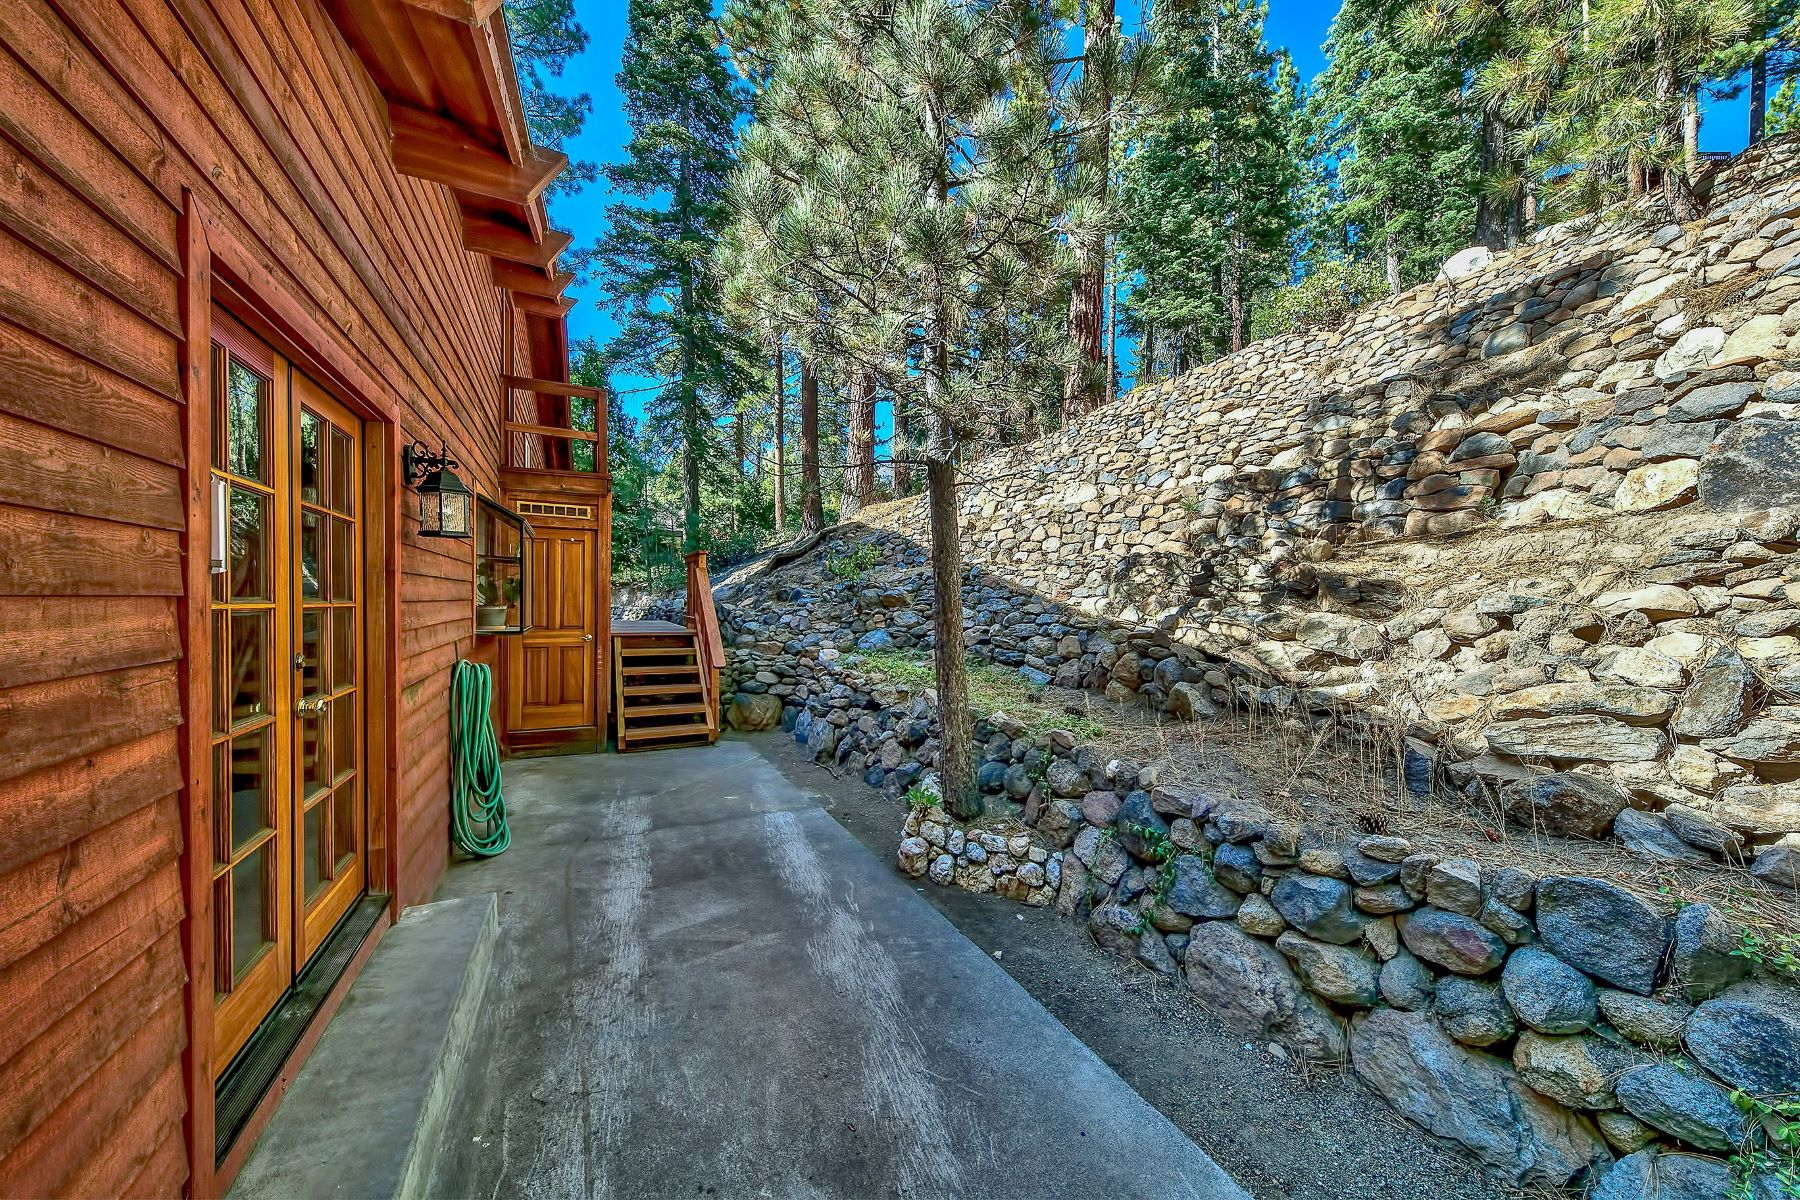 Additional photo for property listing at 504 Country Club Drive, Incline Village, NV 89451 504 Country Club Drive Incline Village, Nevada 89451 United States